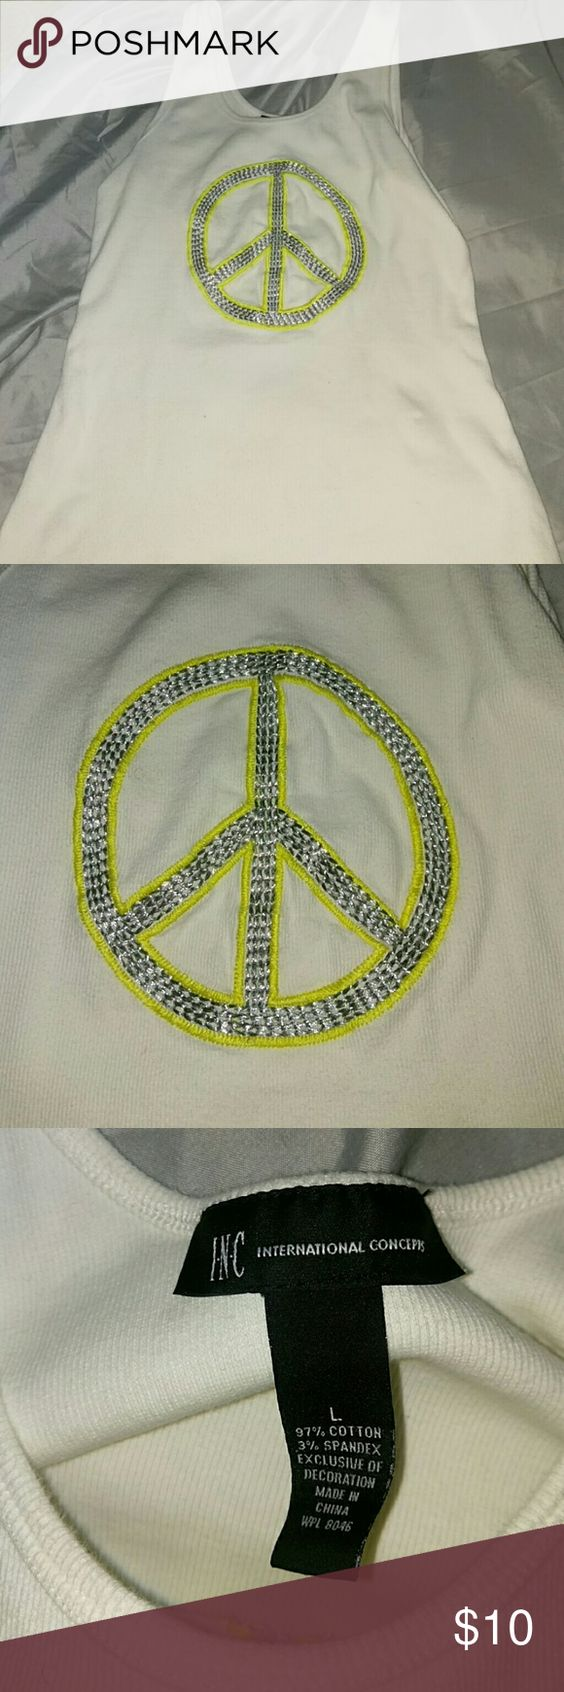 Peace sign tank top White tank with yellow and silver piece sign emblem INC International Concepts Tops Tank Tops